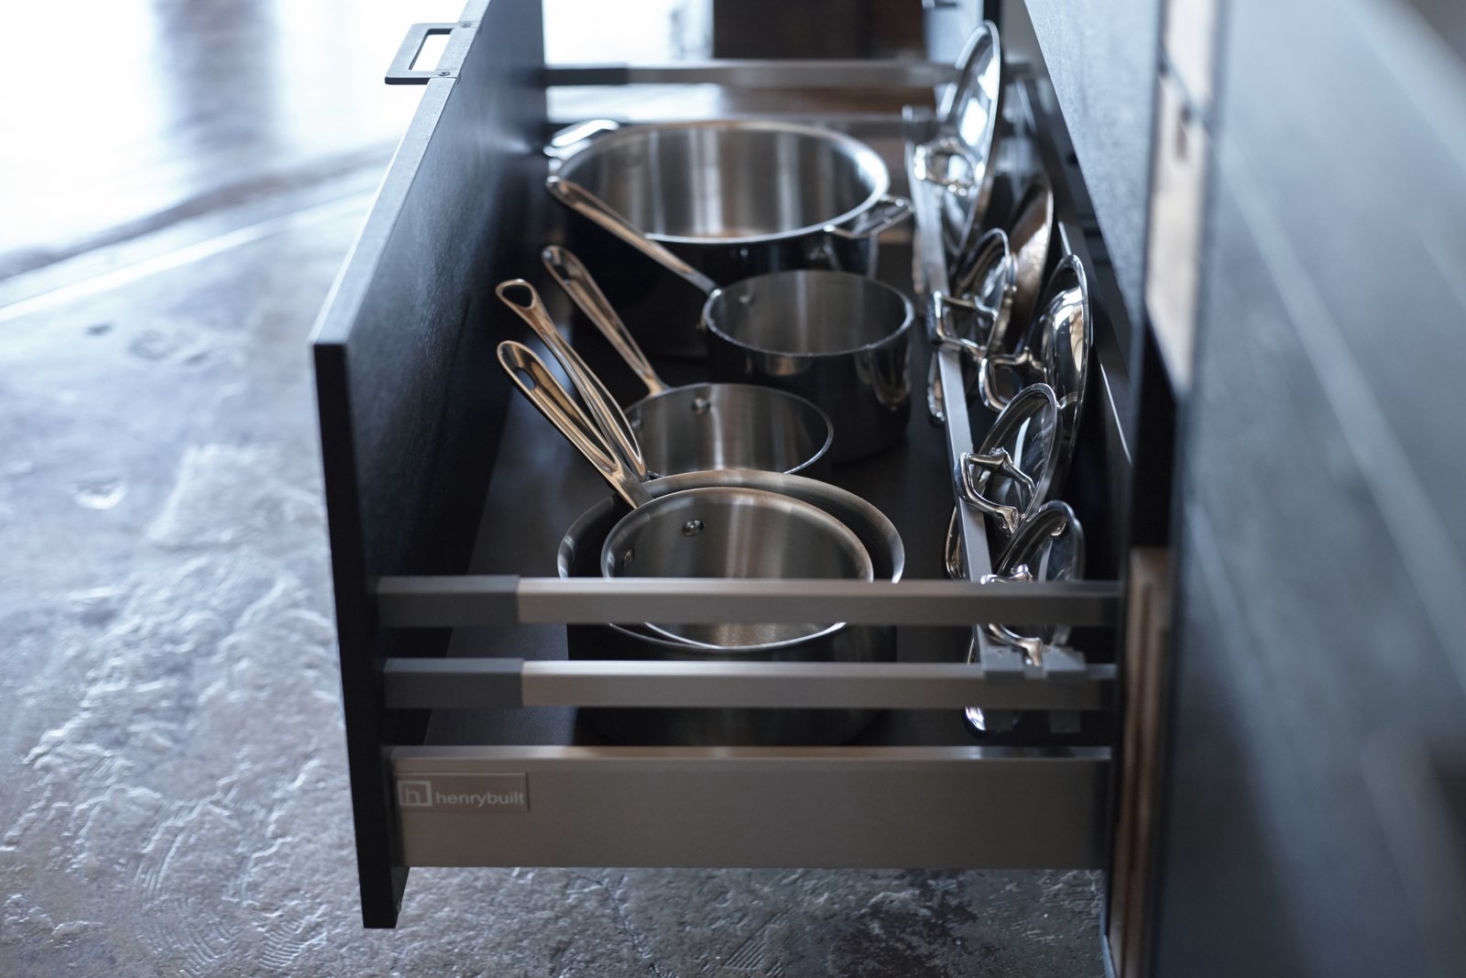 The Henrybuilt system includes deep, eminently practical drawers for pot and lid storage.